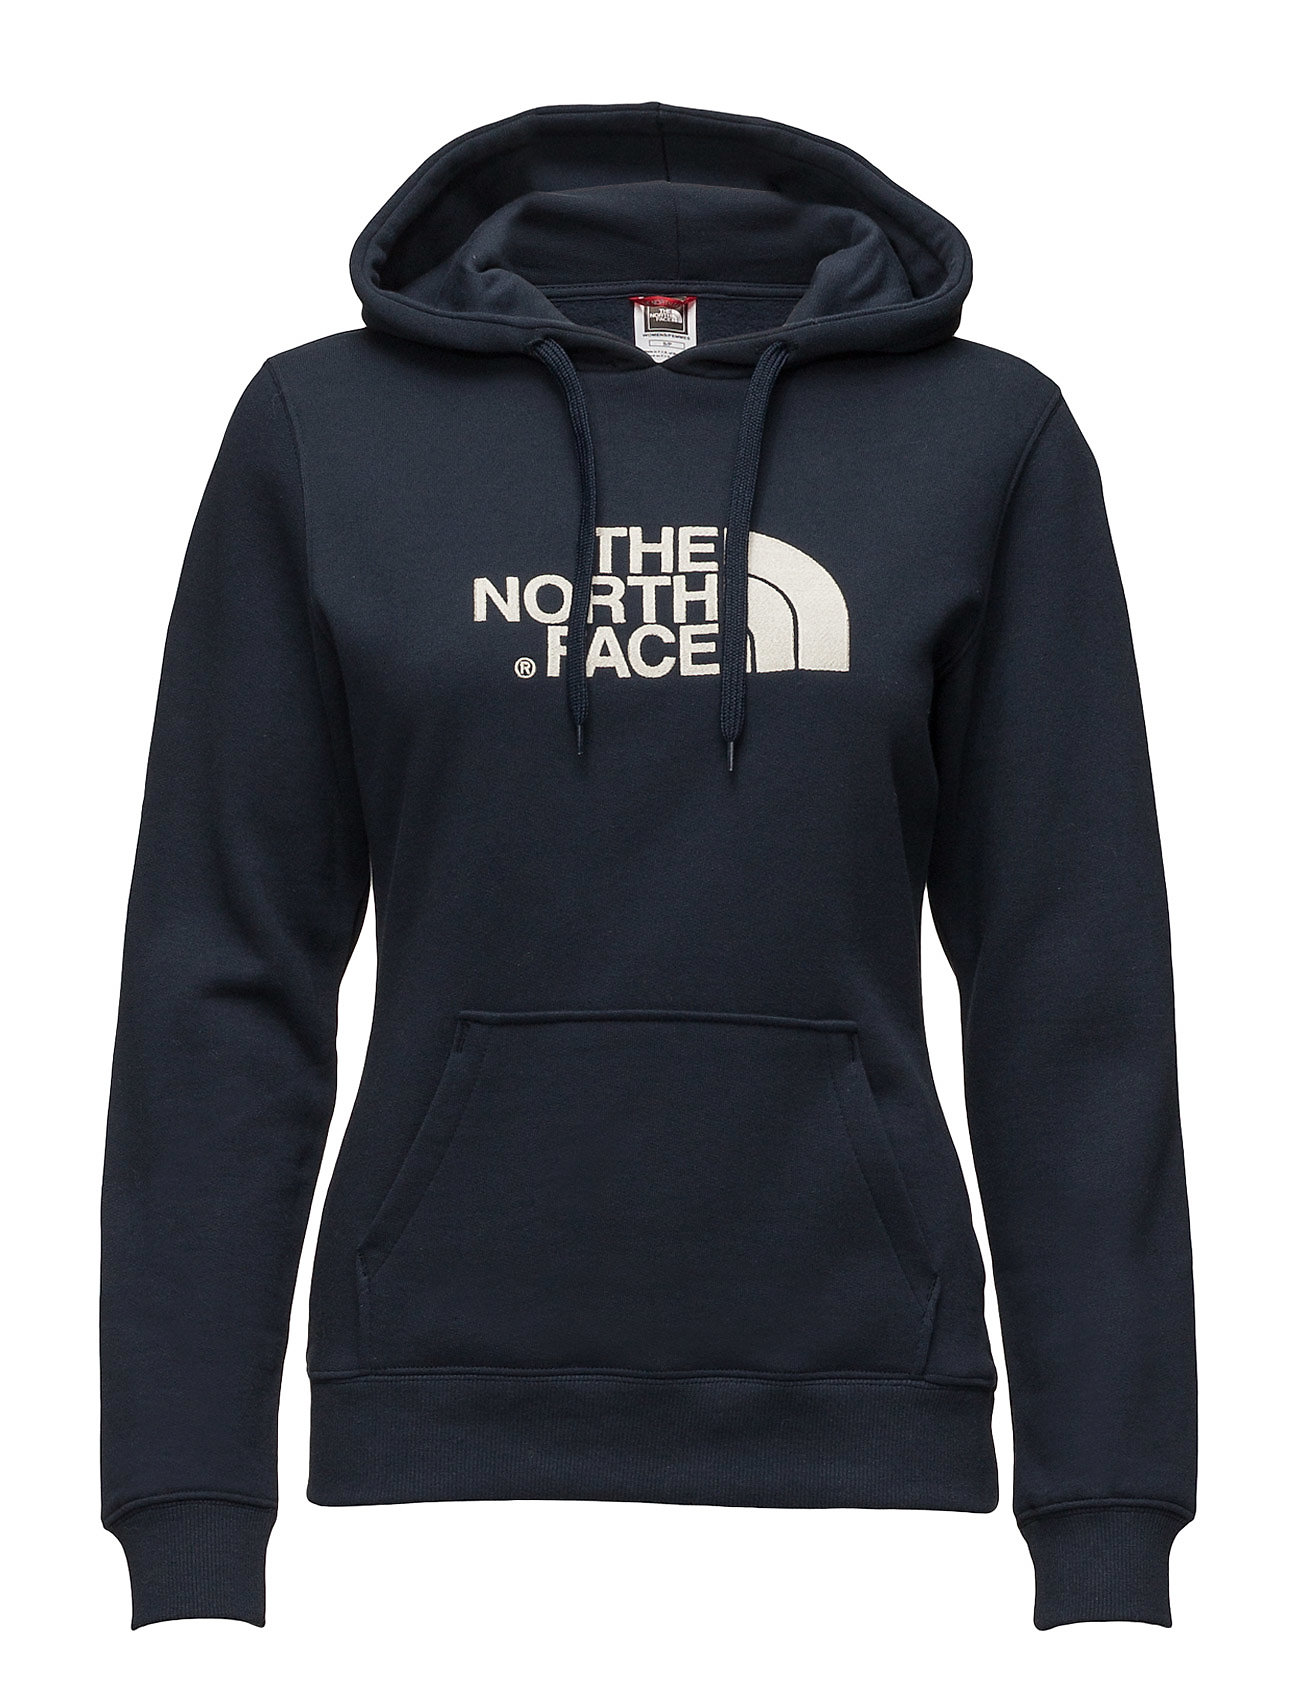 W drew peak pul hd fra the north face på boozt.com dk